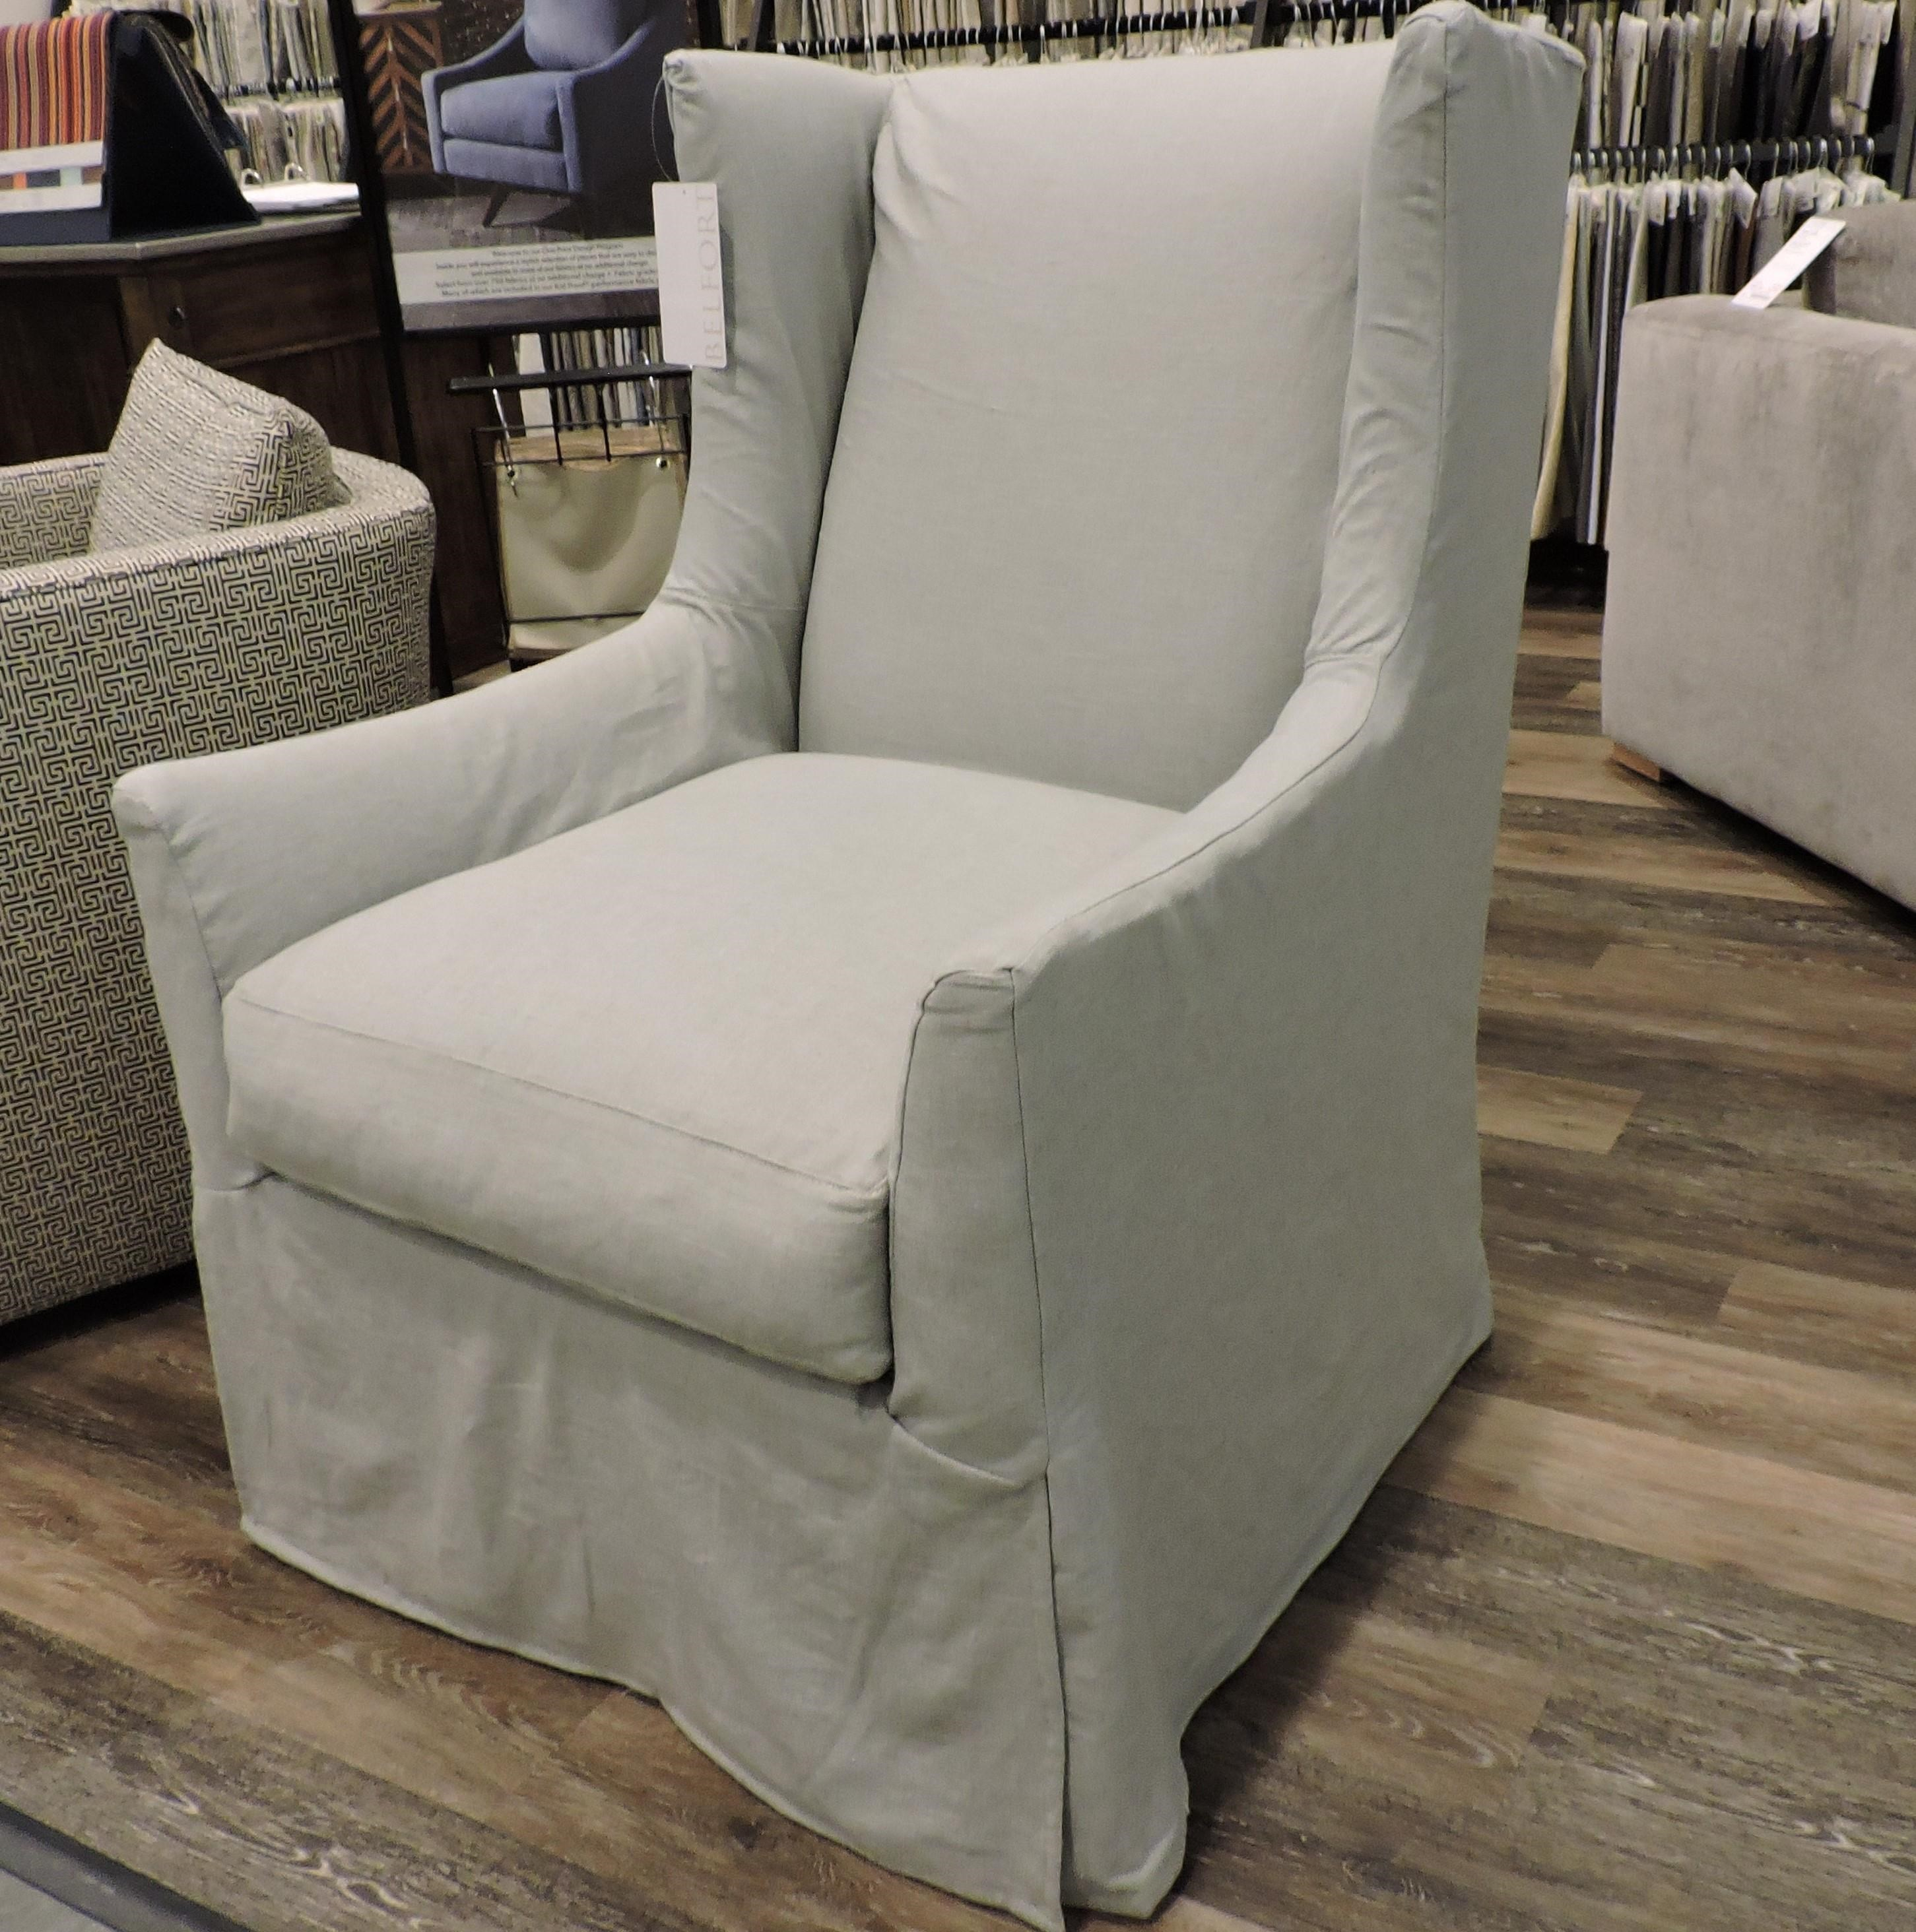 Ellory Slipcovered Swivel Chair by Robin Bruce at Belfort Furniture